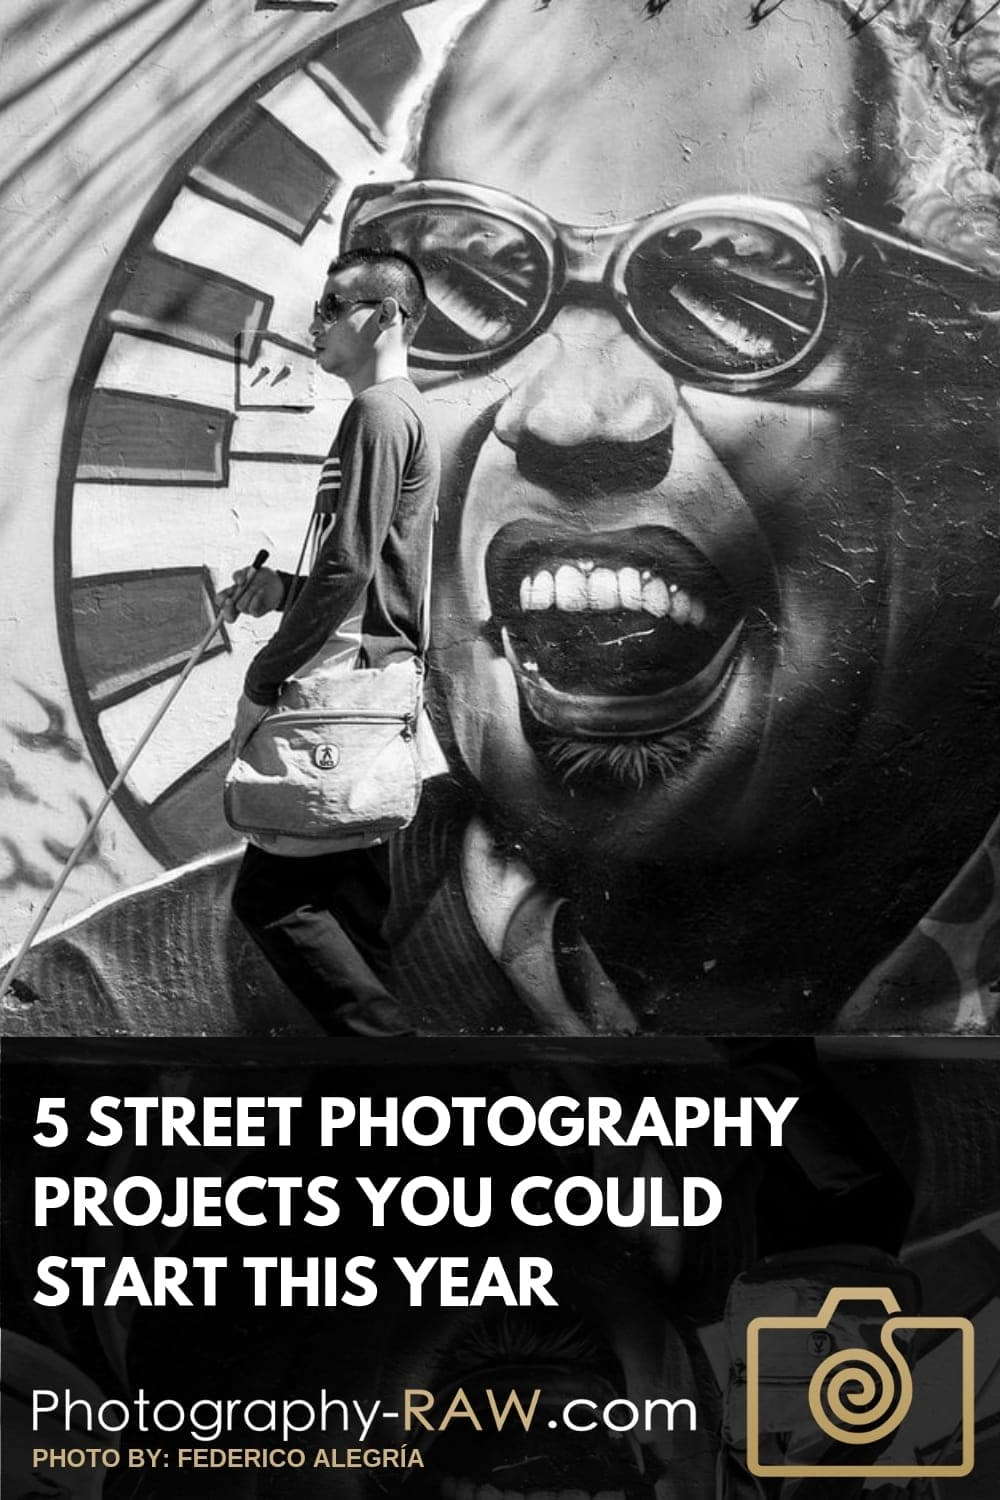 5 Street Photography Projects You Could Start This Year